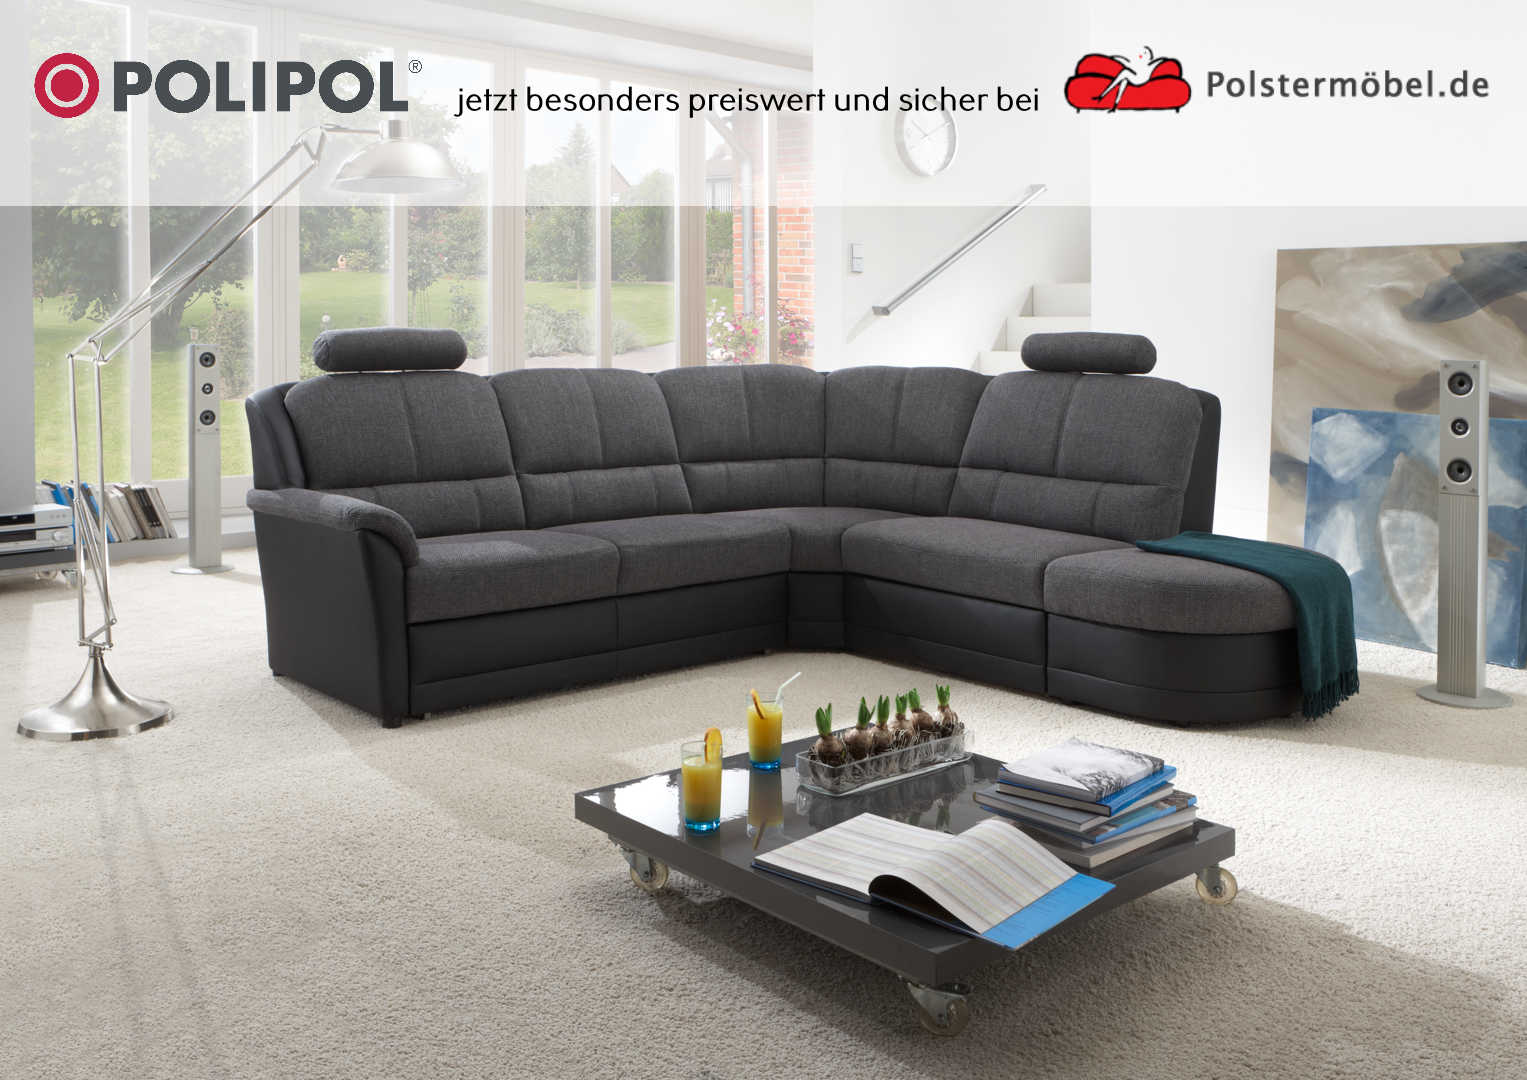 polipol mataro polsterm. Black Bedroom Furniture Sets. Home Design Ideas